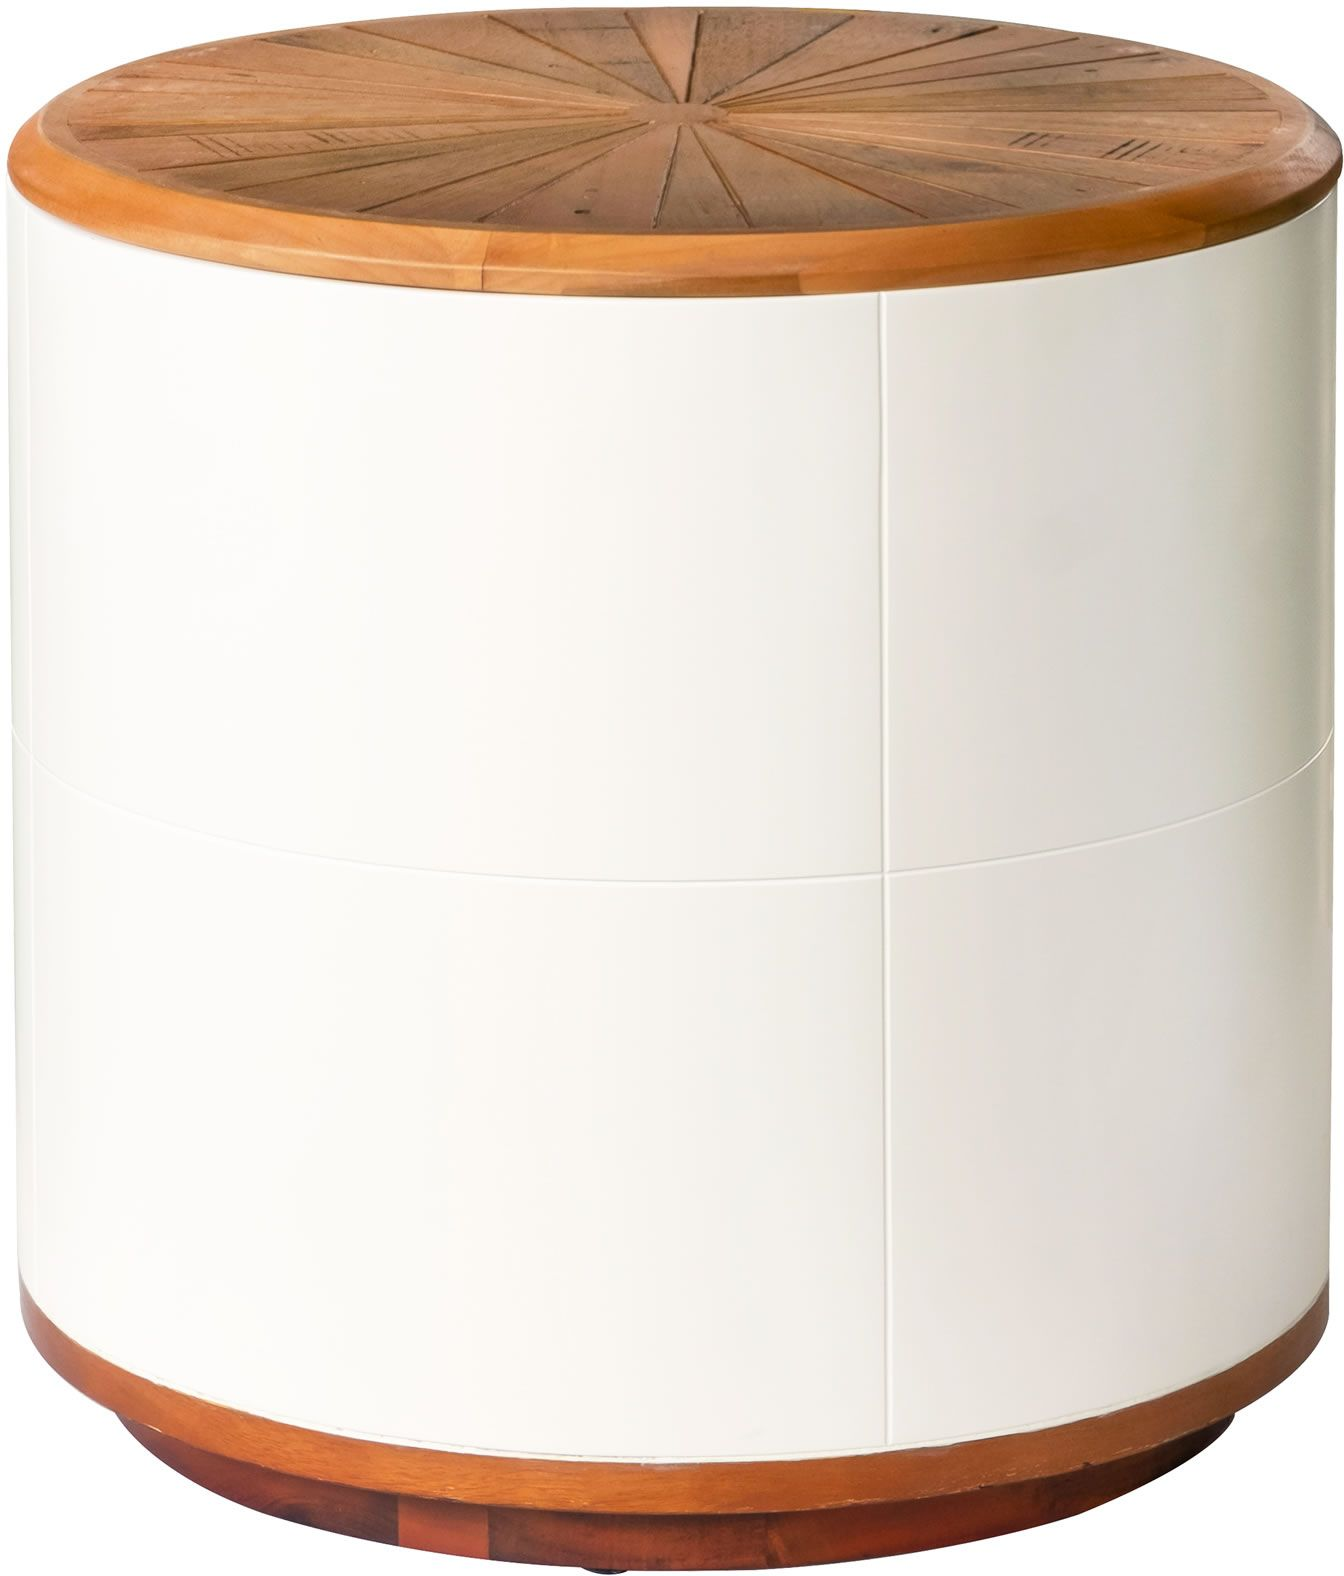 Lh Imports Casablanca Round Side Table Stool With Storage Cb036 Modern Furniture Canada